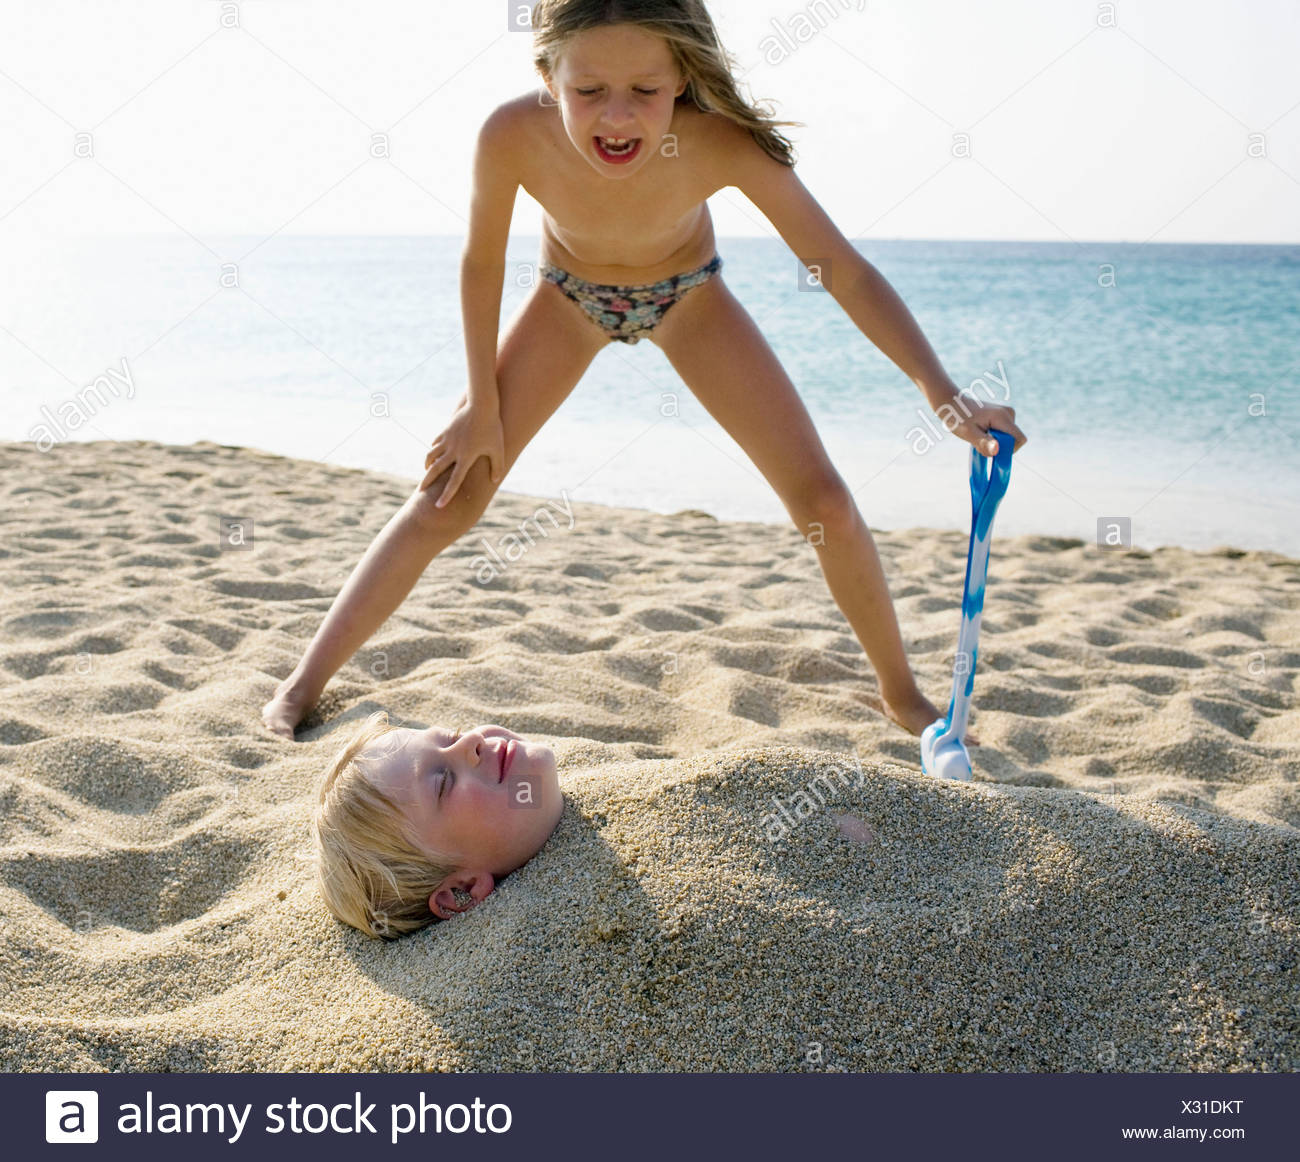 Young girl burying young boy in the sand at the beach . Stock Photo